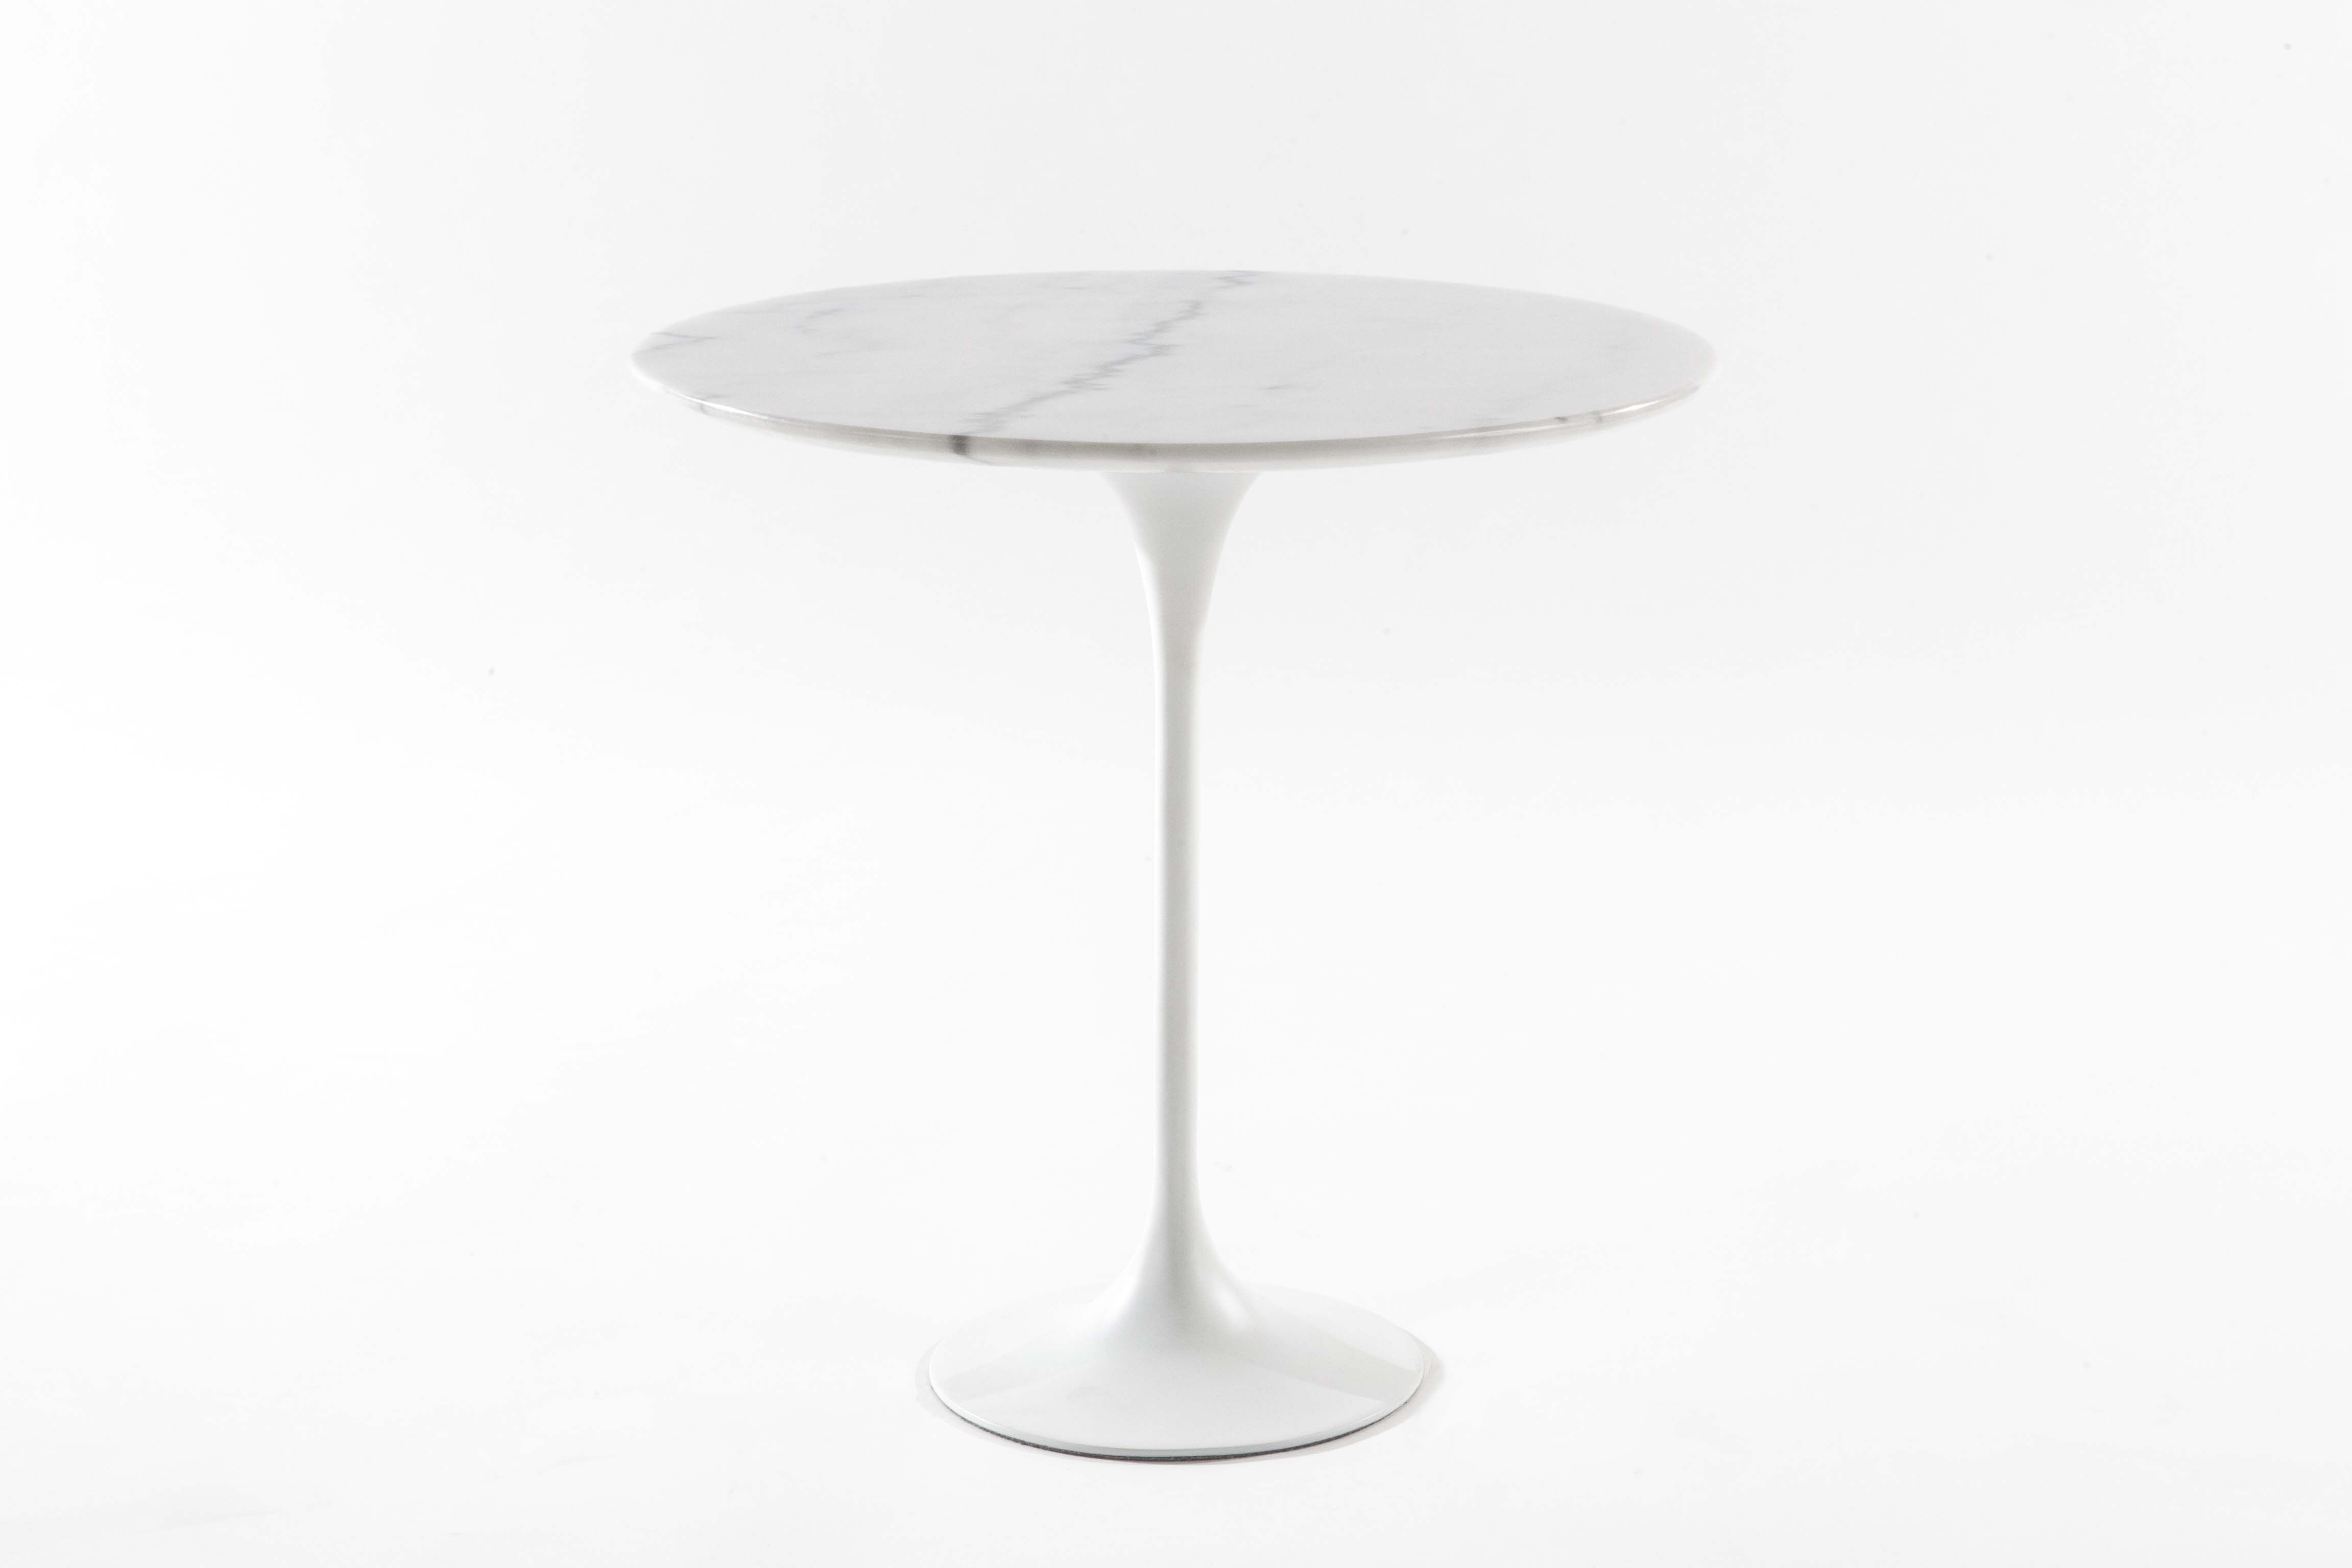 engaging small accent table white threshold room whitewash round target pedestal lighting for contem top living decor gold corner tiffany lamps centerpieces outdoor ideas off